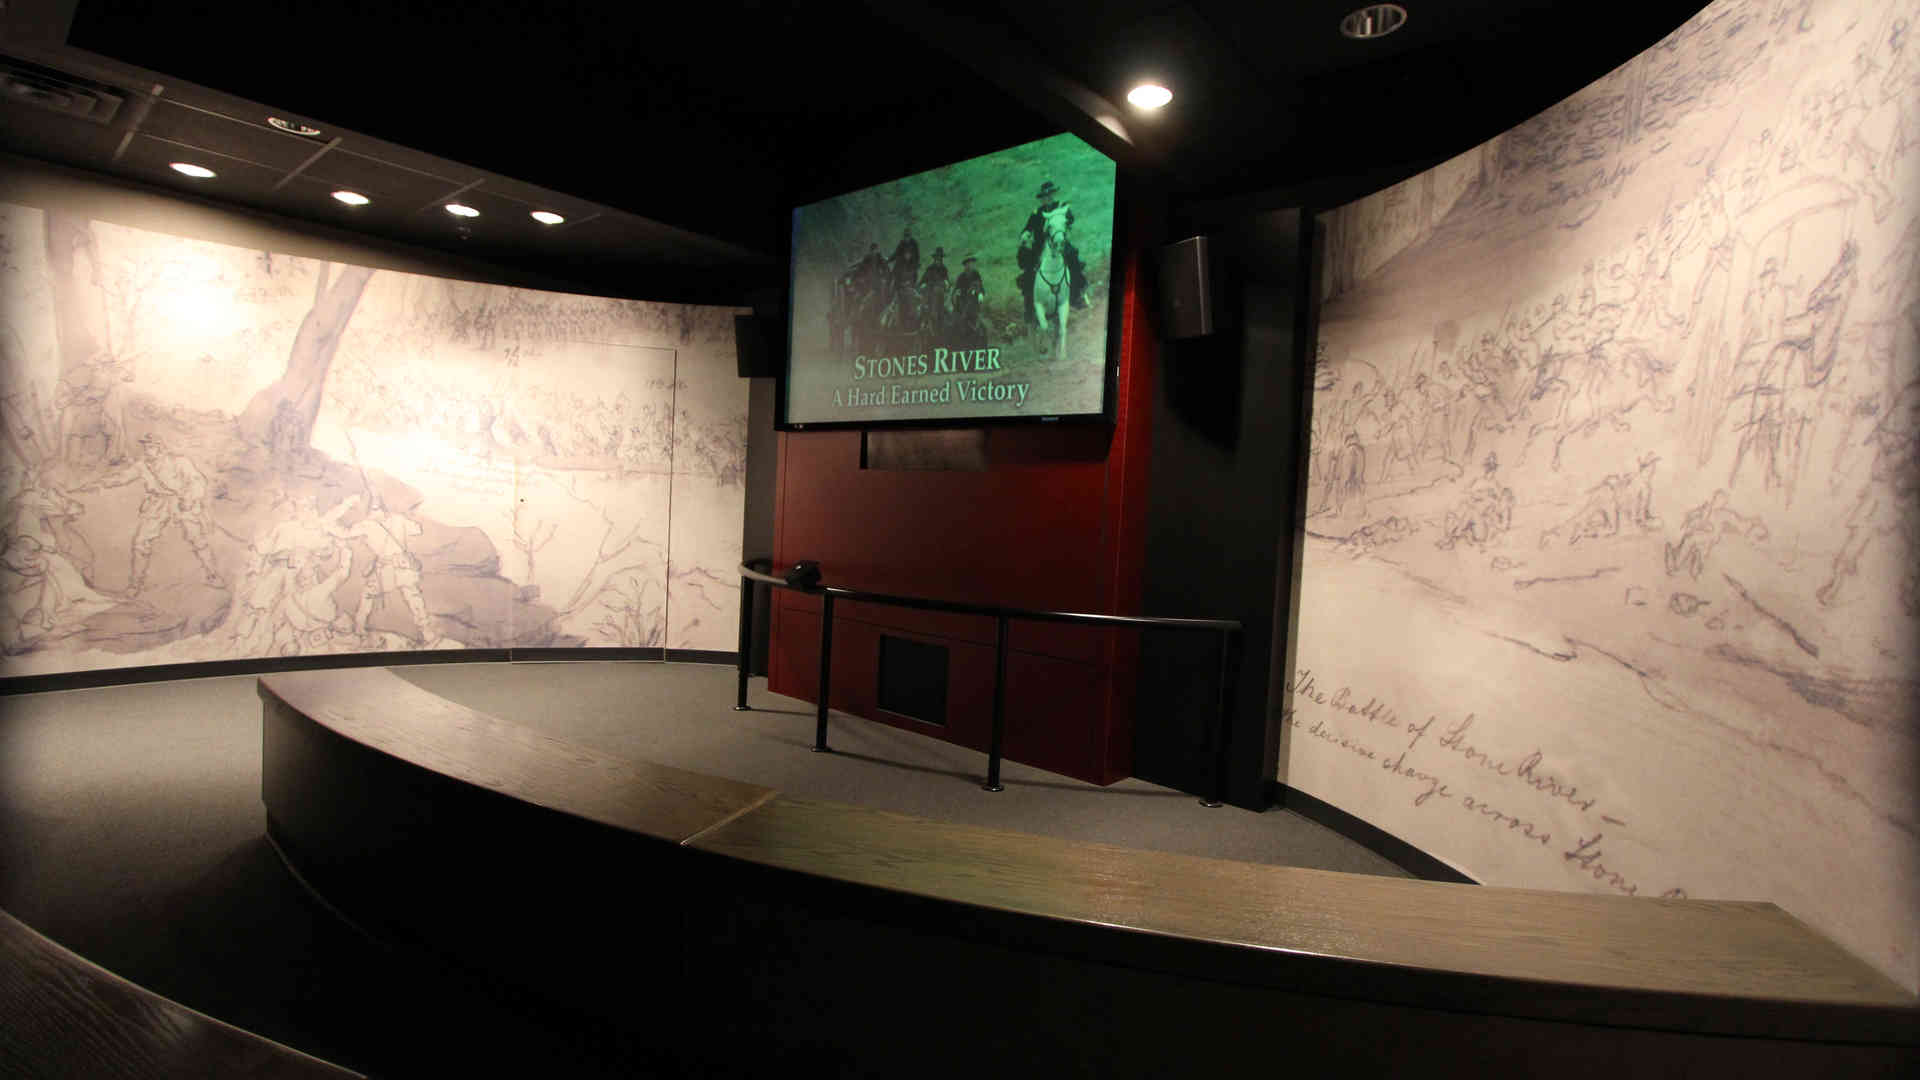 stones river national battlefield visitor center and headquarters exhibit theater and a/v